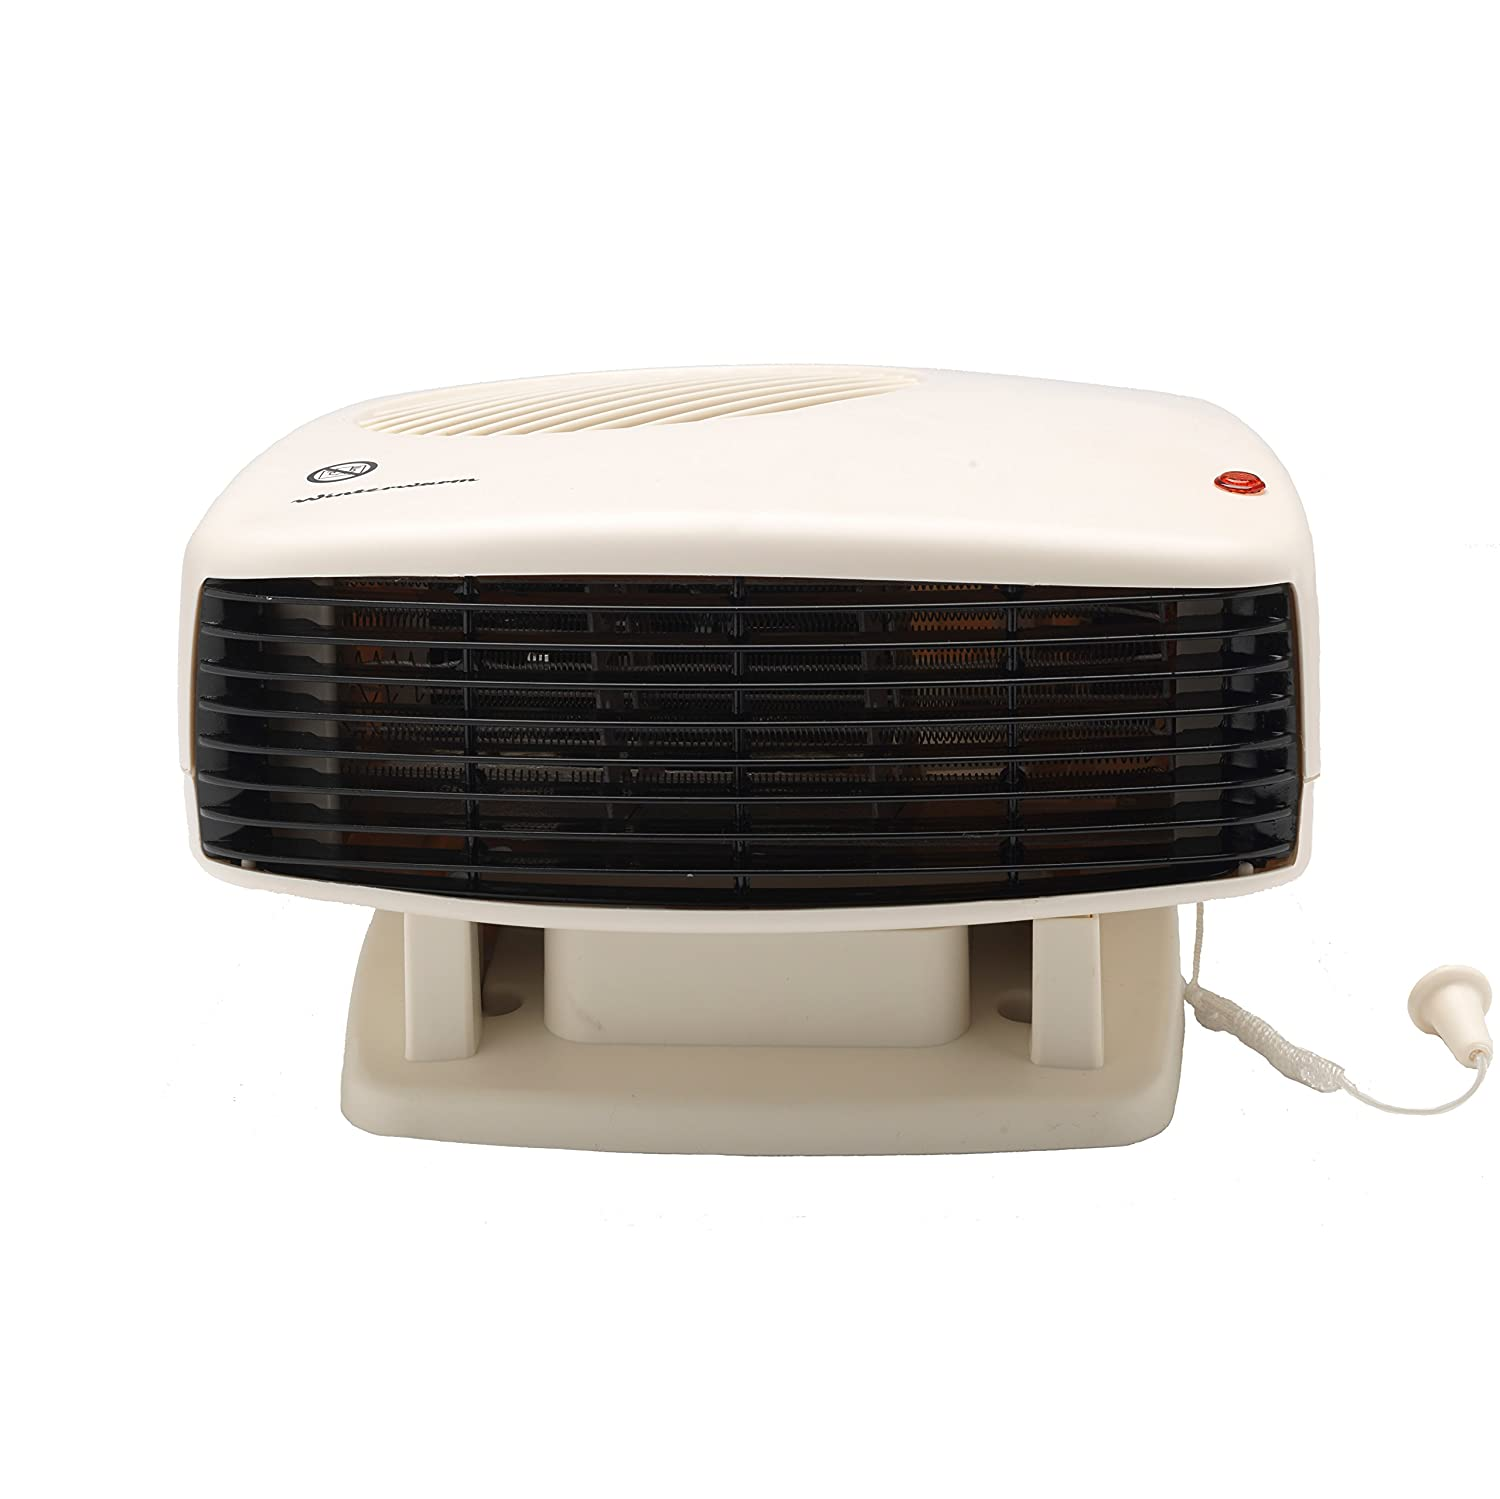 Downflow Bathroom Heater Winterwarm 2 Kw Wall Mounted Downflow Bathroom Fan Heater Amazon